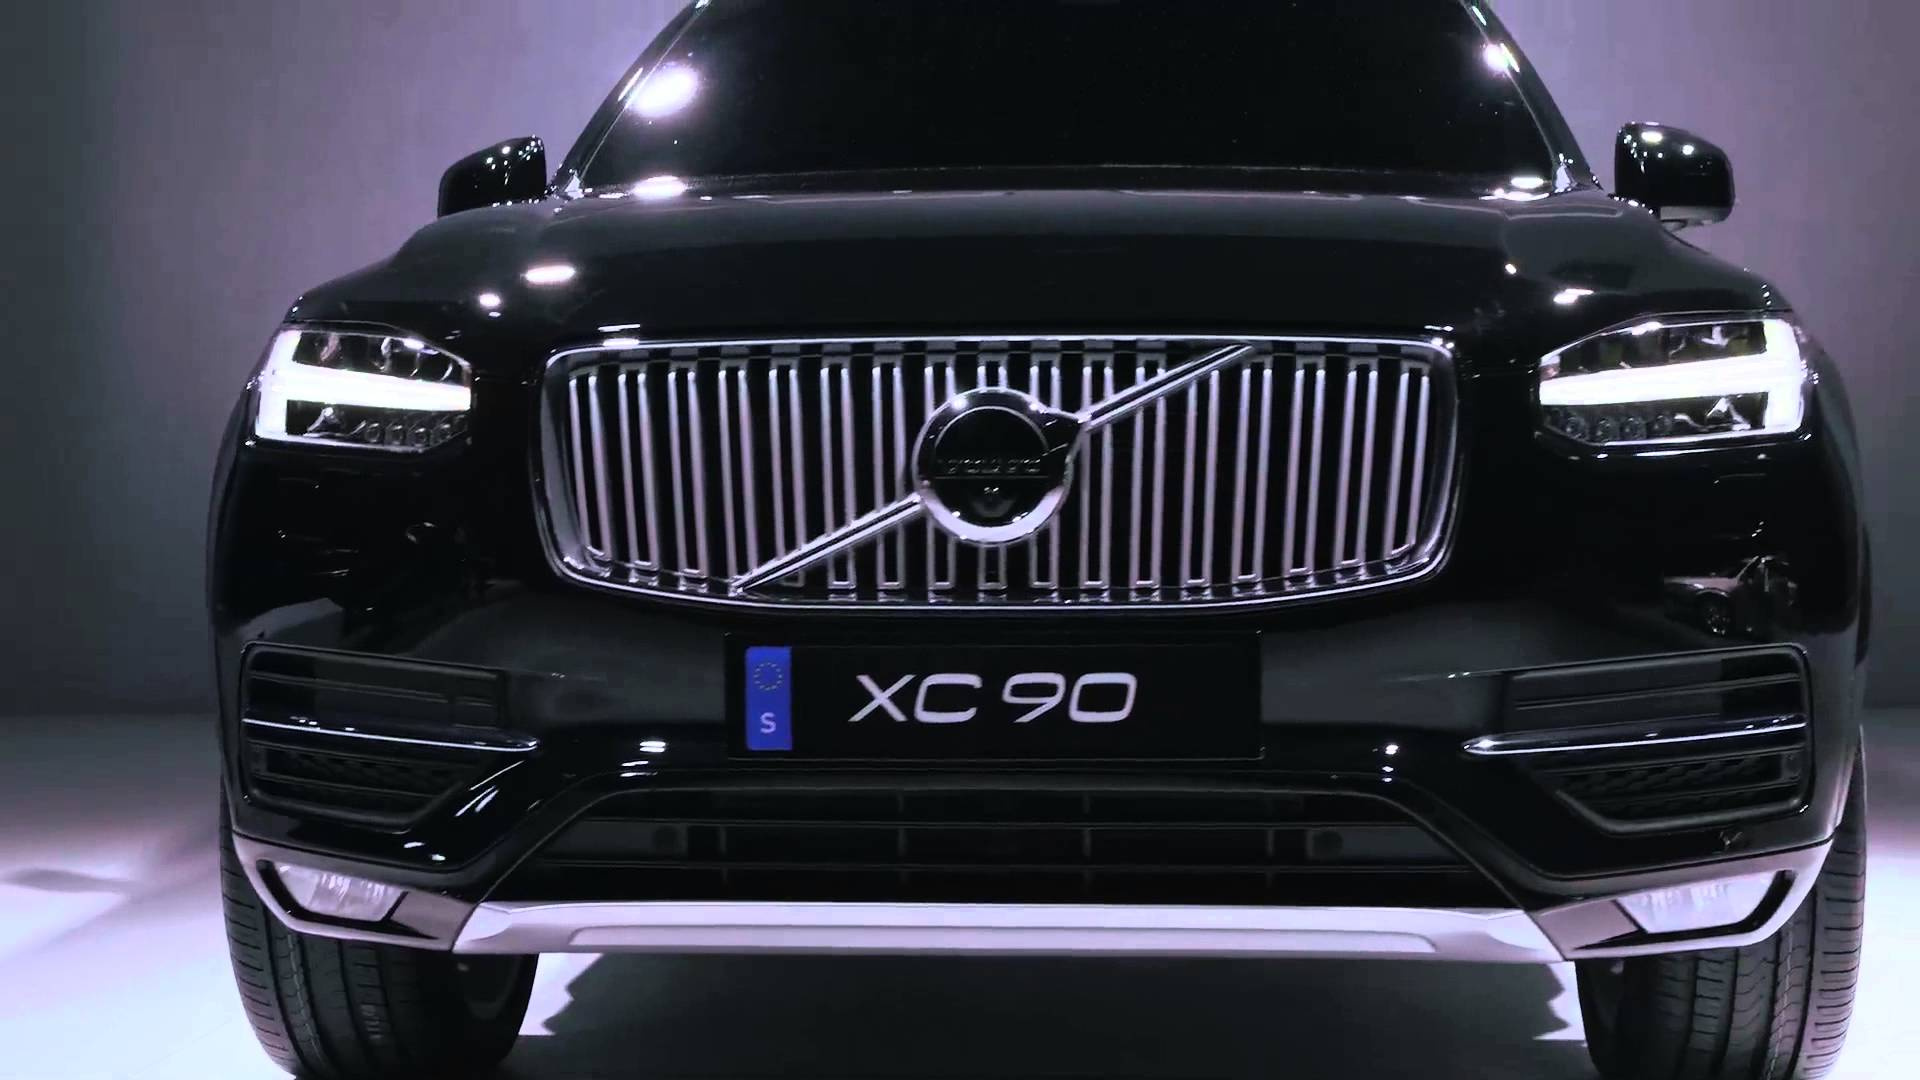 Iphone 6 Hd Car Wallpaper 1080p Volvo Xc90 Wallpapers High Quality Download Free